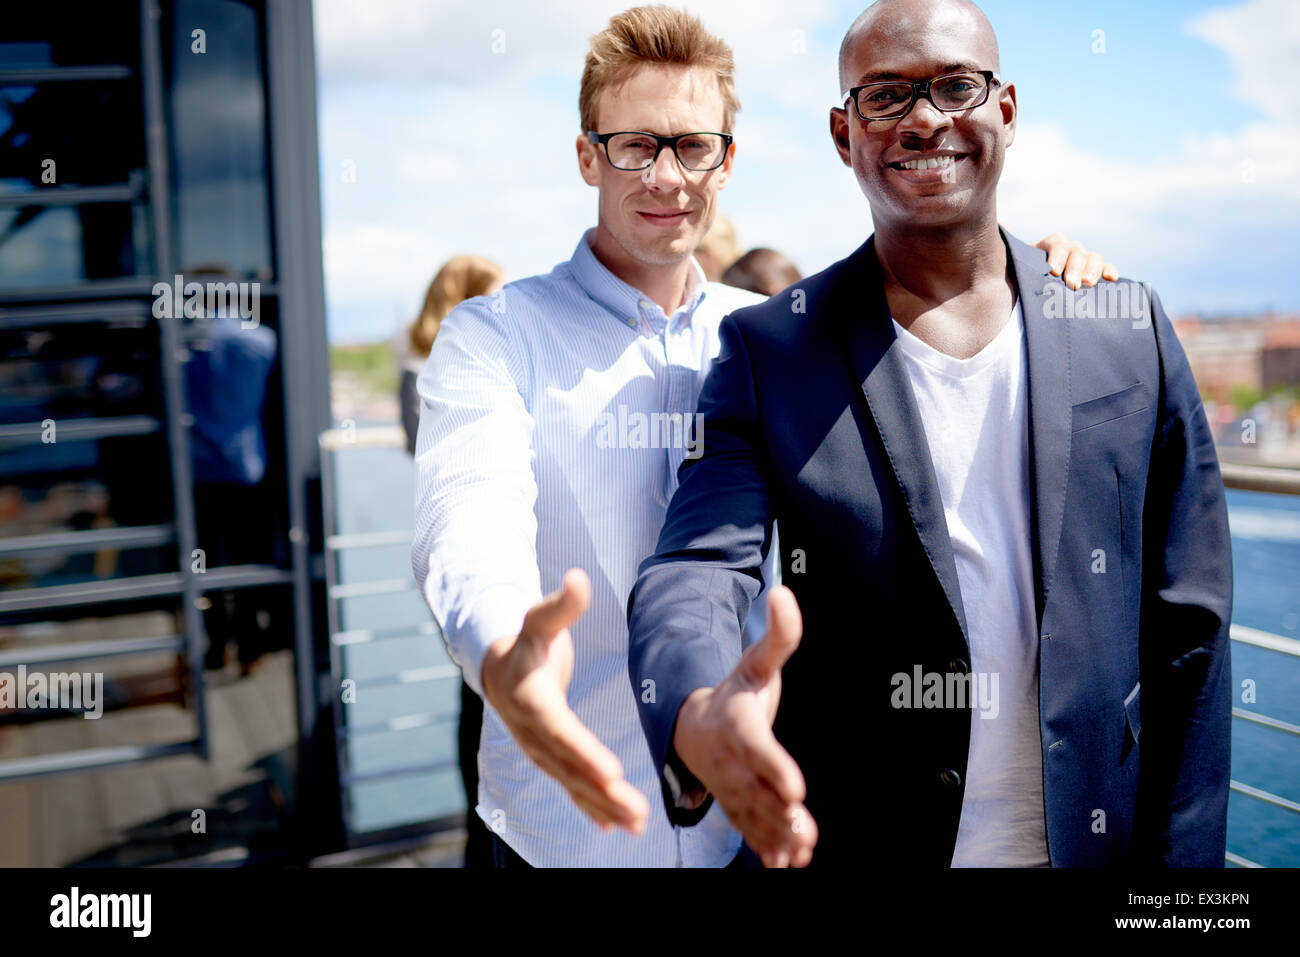 Black male colleague and white male colleague standing together smiling with hands stretched out - Stock Image